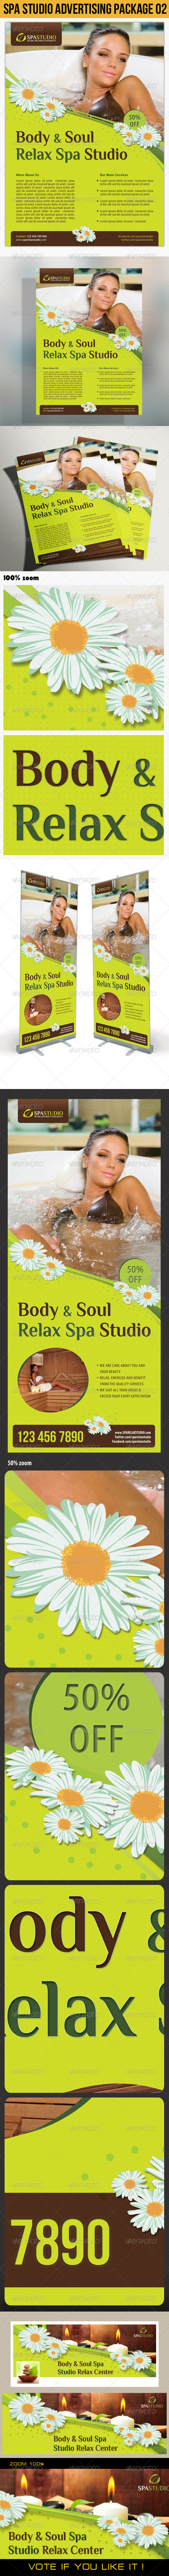 GraphicRiver Spa Studio Advertising Package 02 5434656